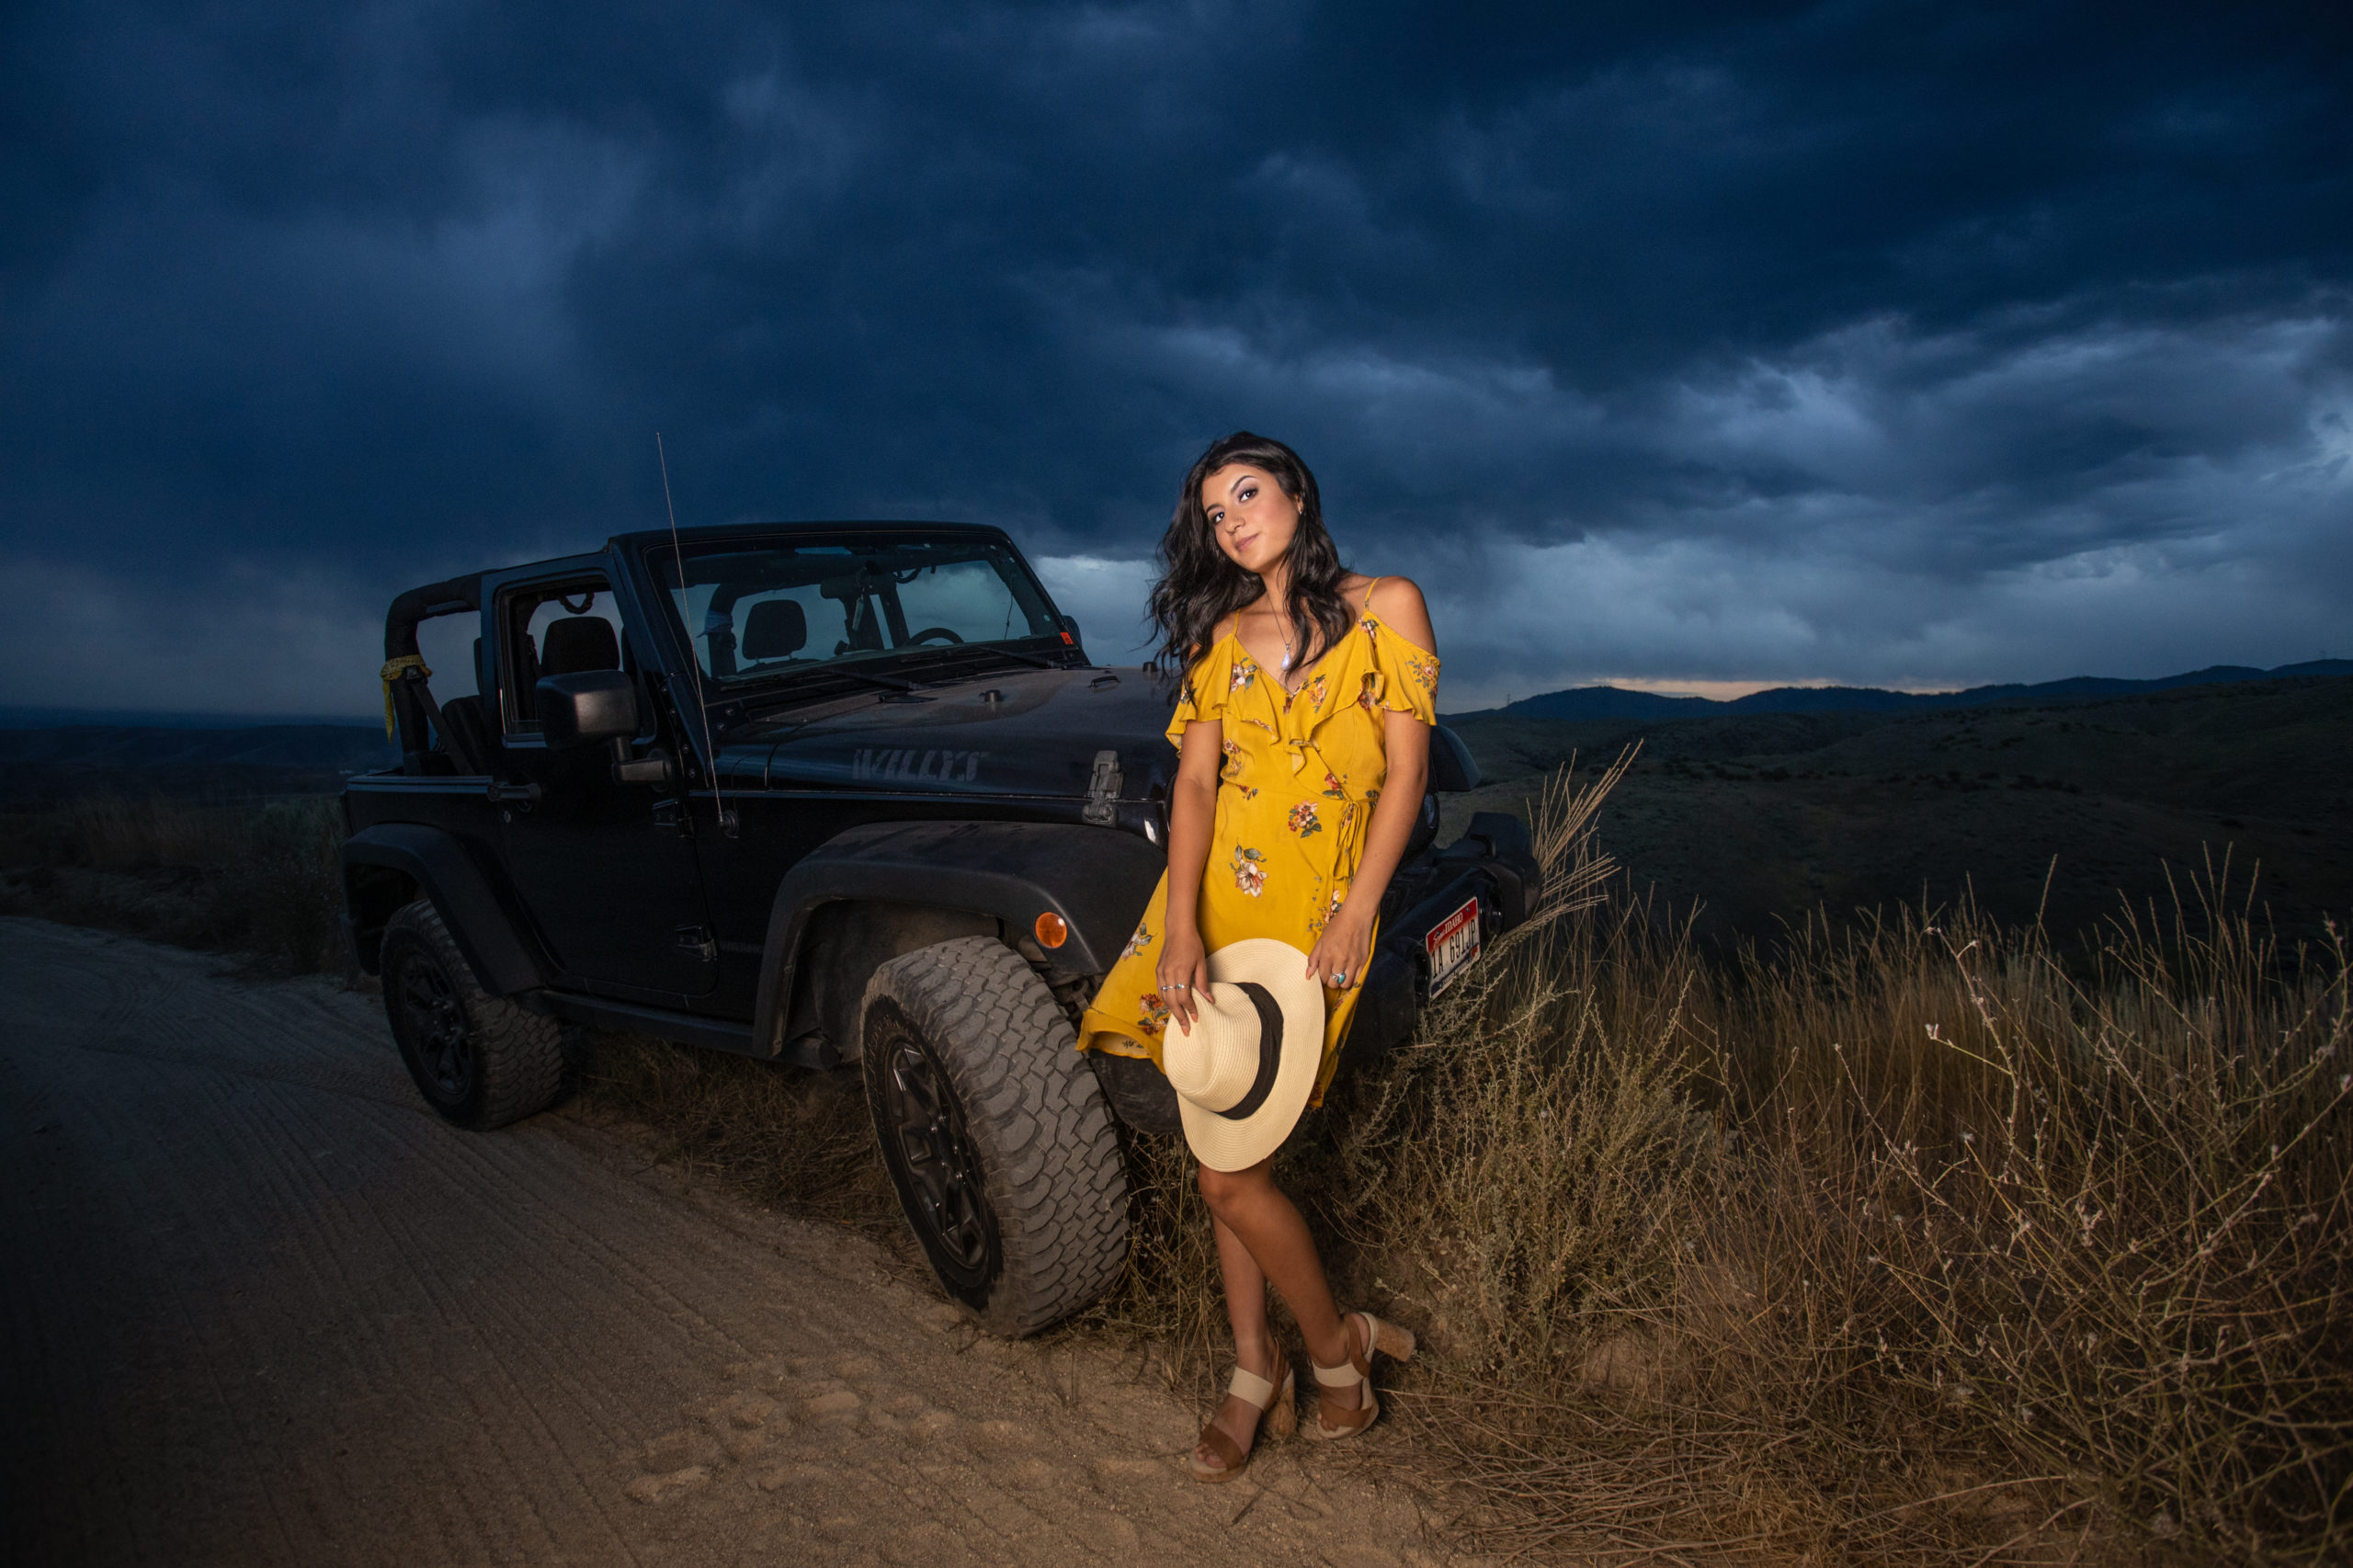 senior high girl at sunset with storm clouds and her jeep